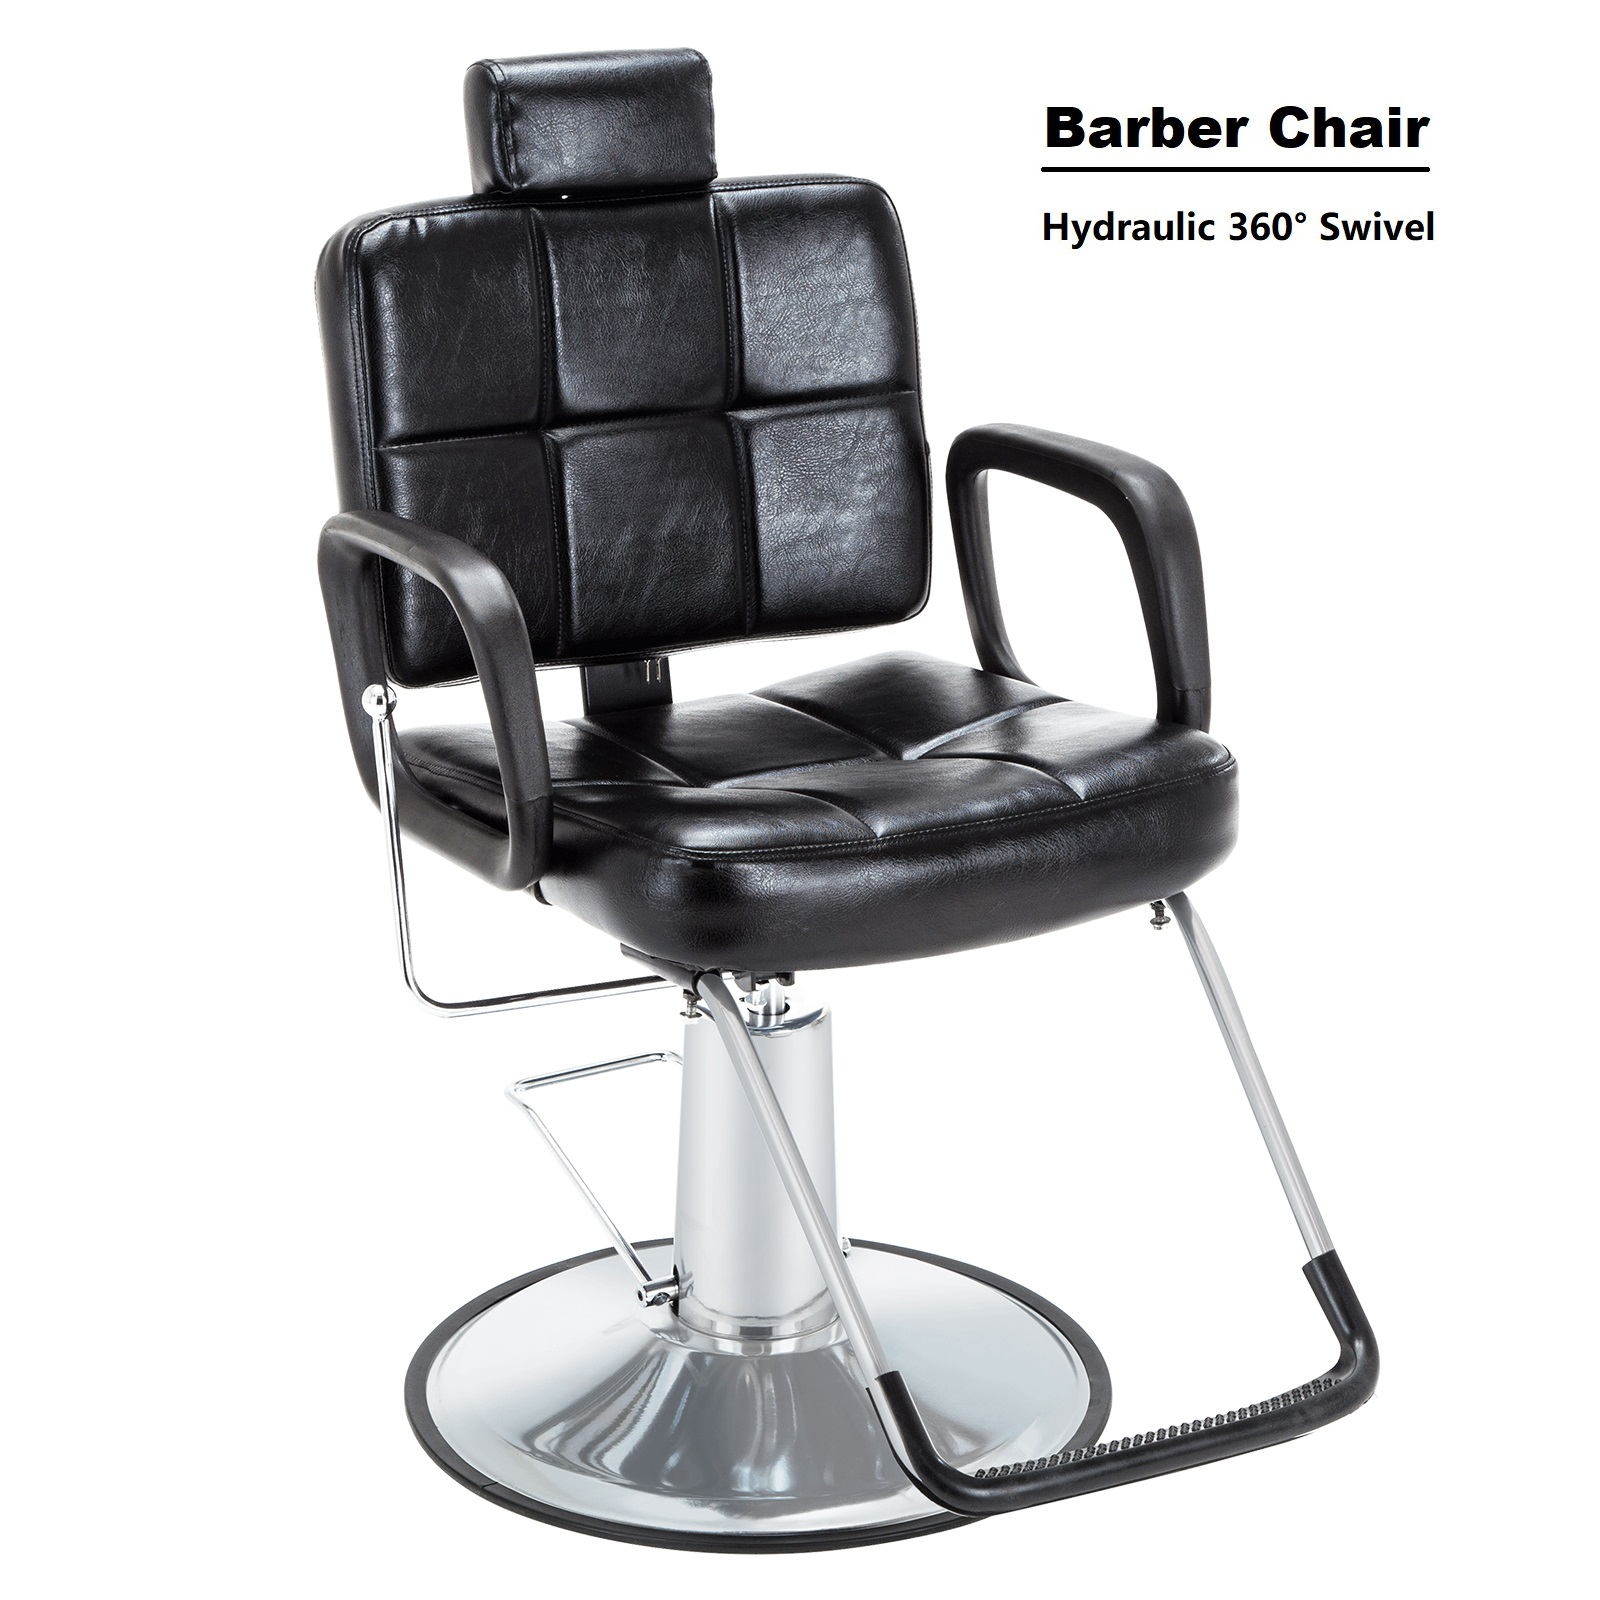 Pleasant Details About 3600Swivel Barber Chair Hydraulic Pump Footrest Cover Recliners Salon Equipment Bralicious Painted Fabric Chair Ideas Braliciousco